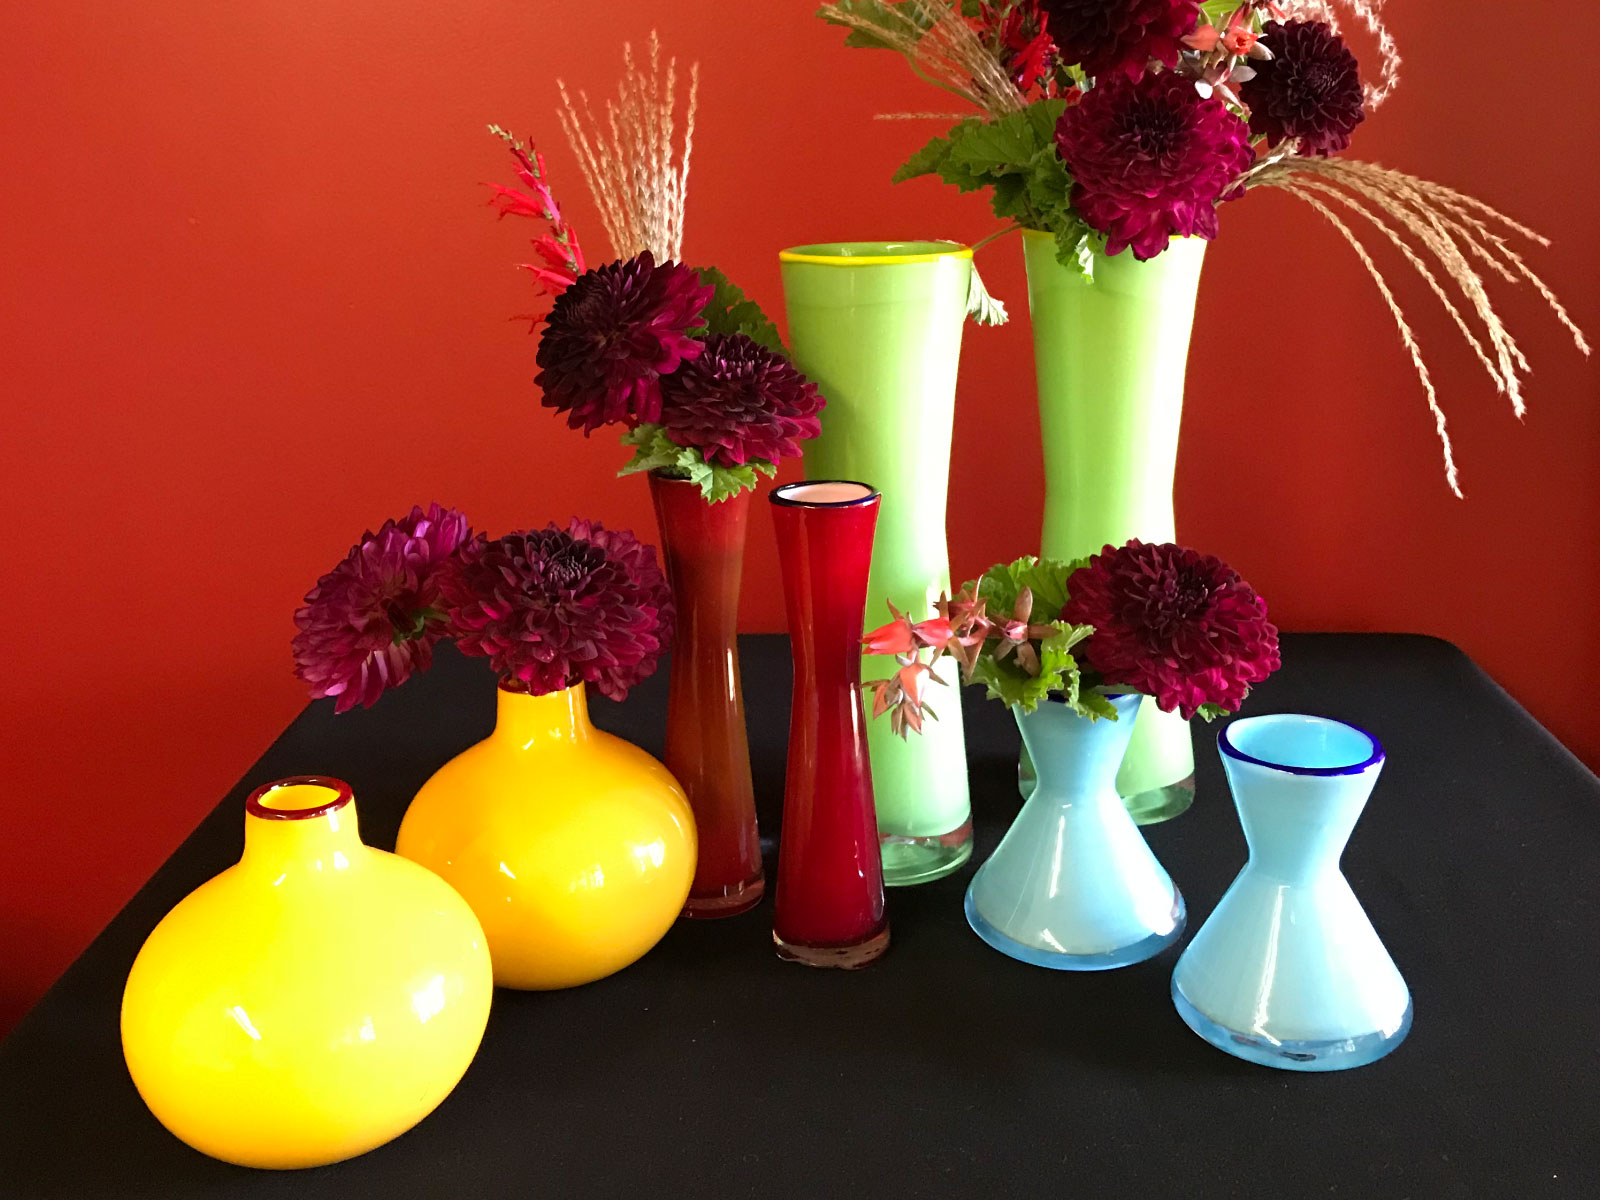 Sets of orange, red, green and blue vases with purple flowers in each one